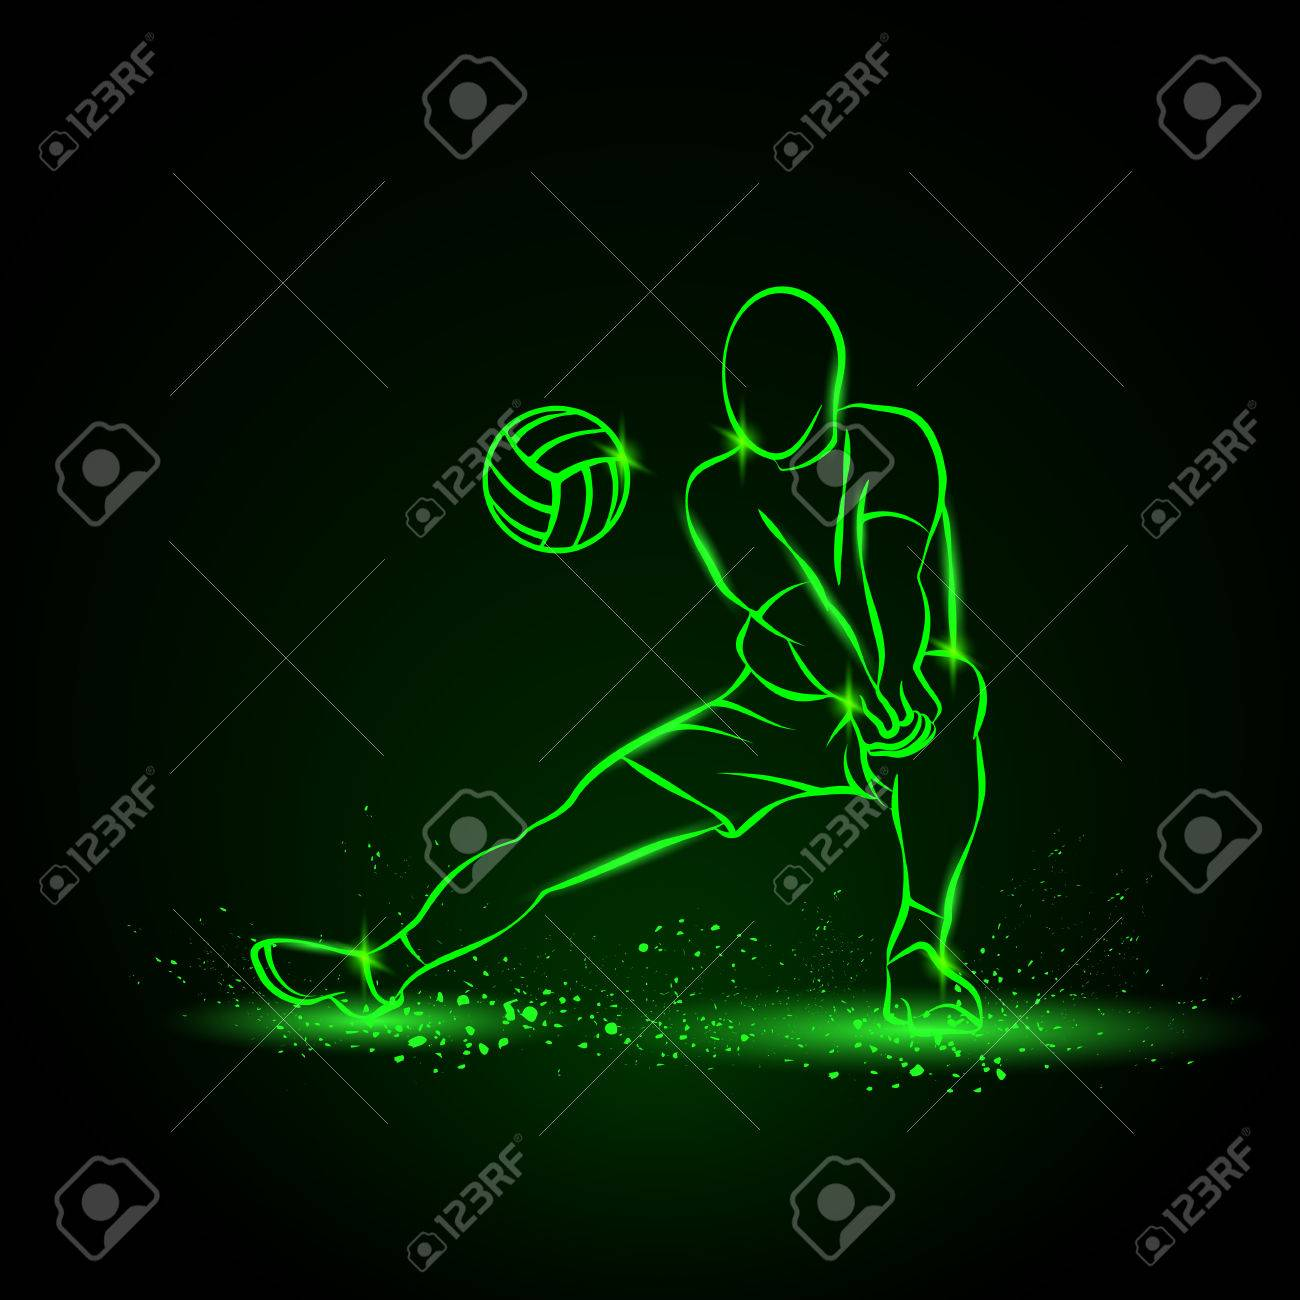 Volleyball Player Plays Volleyball Neon Illustration On A Black 1300x1300